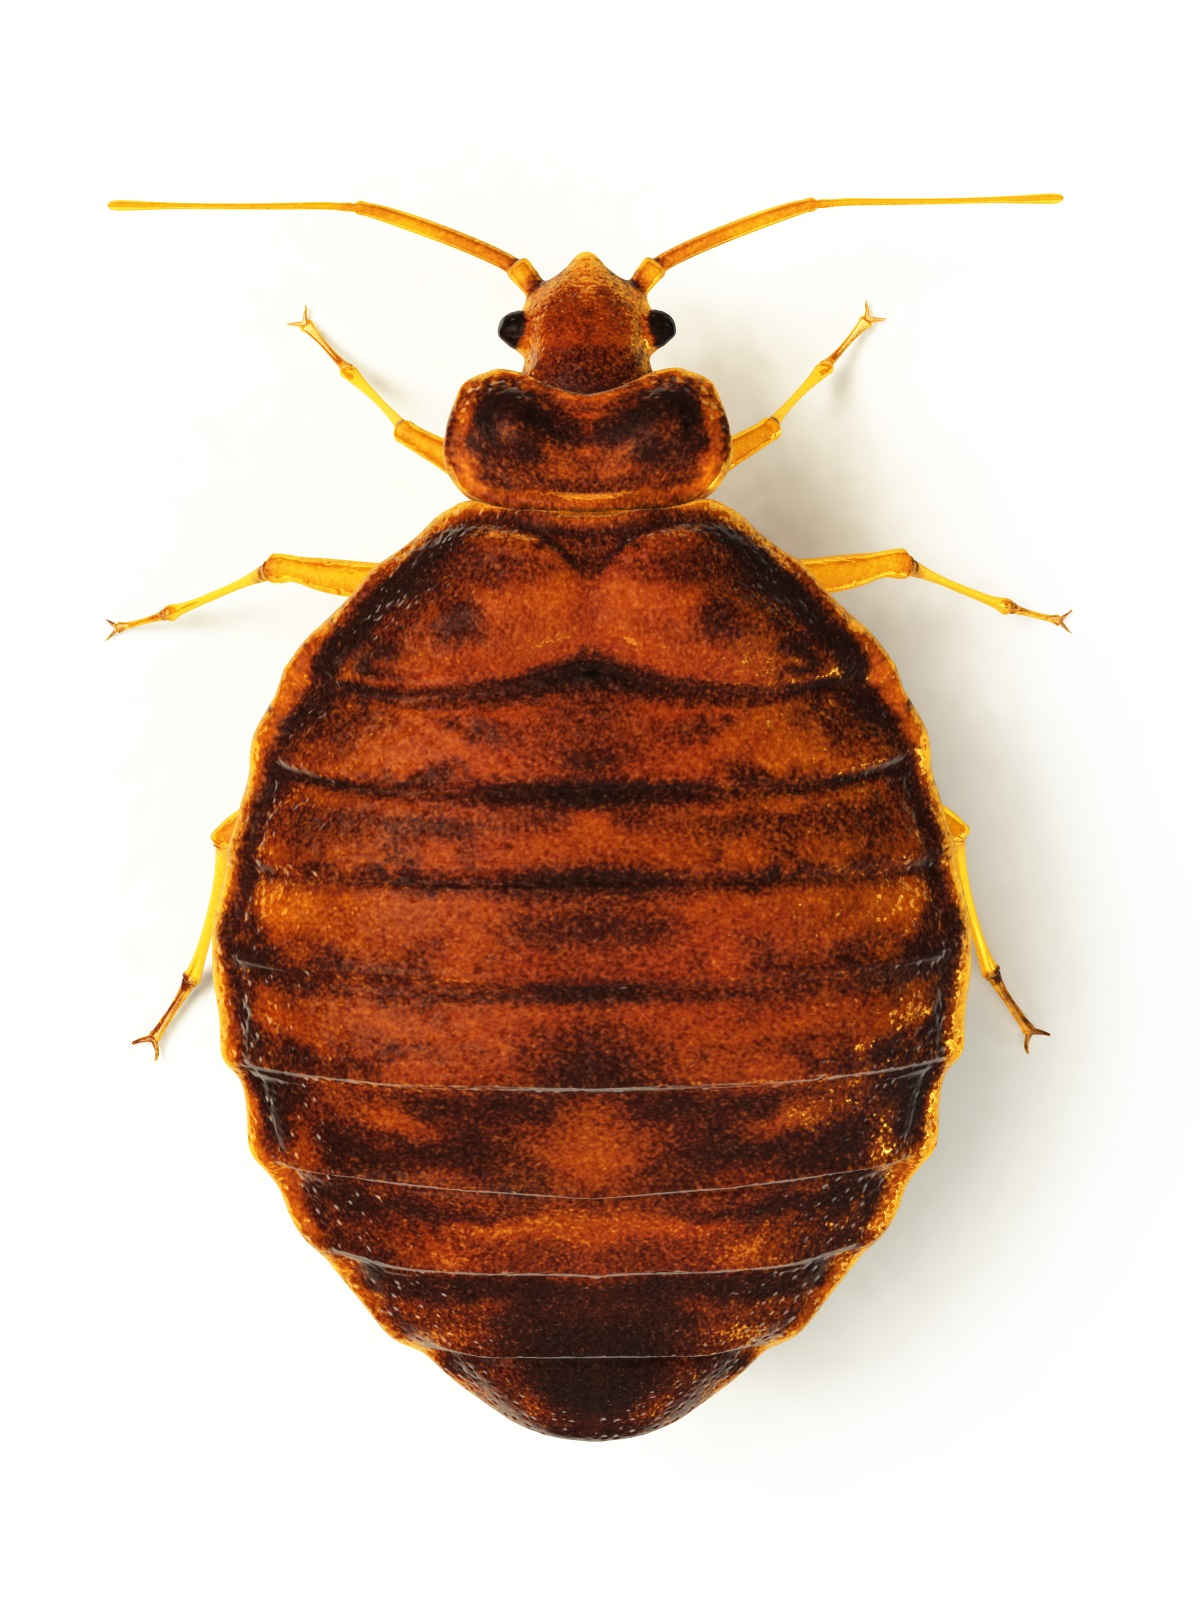 extermination in chester bed bedbug exterminator img bug pa county facts bugs updated